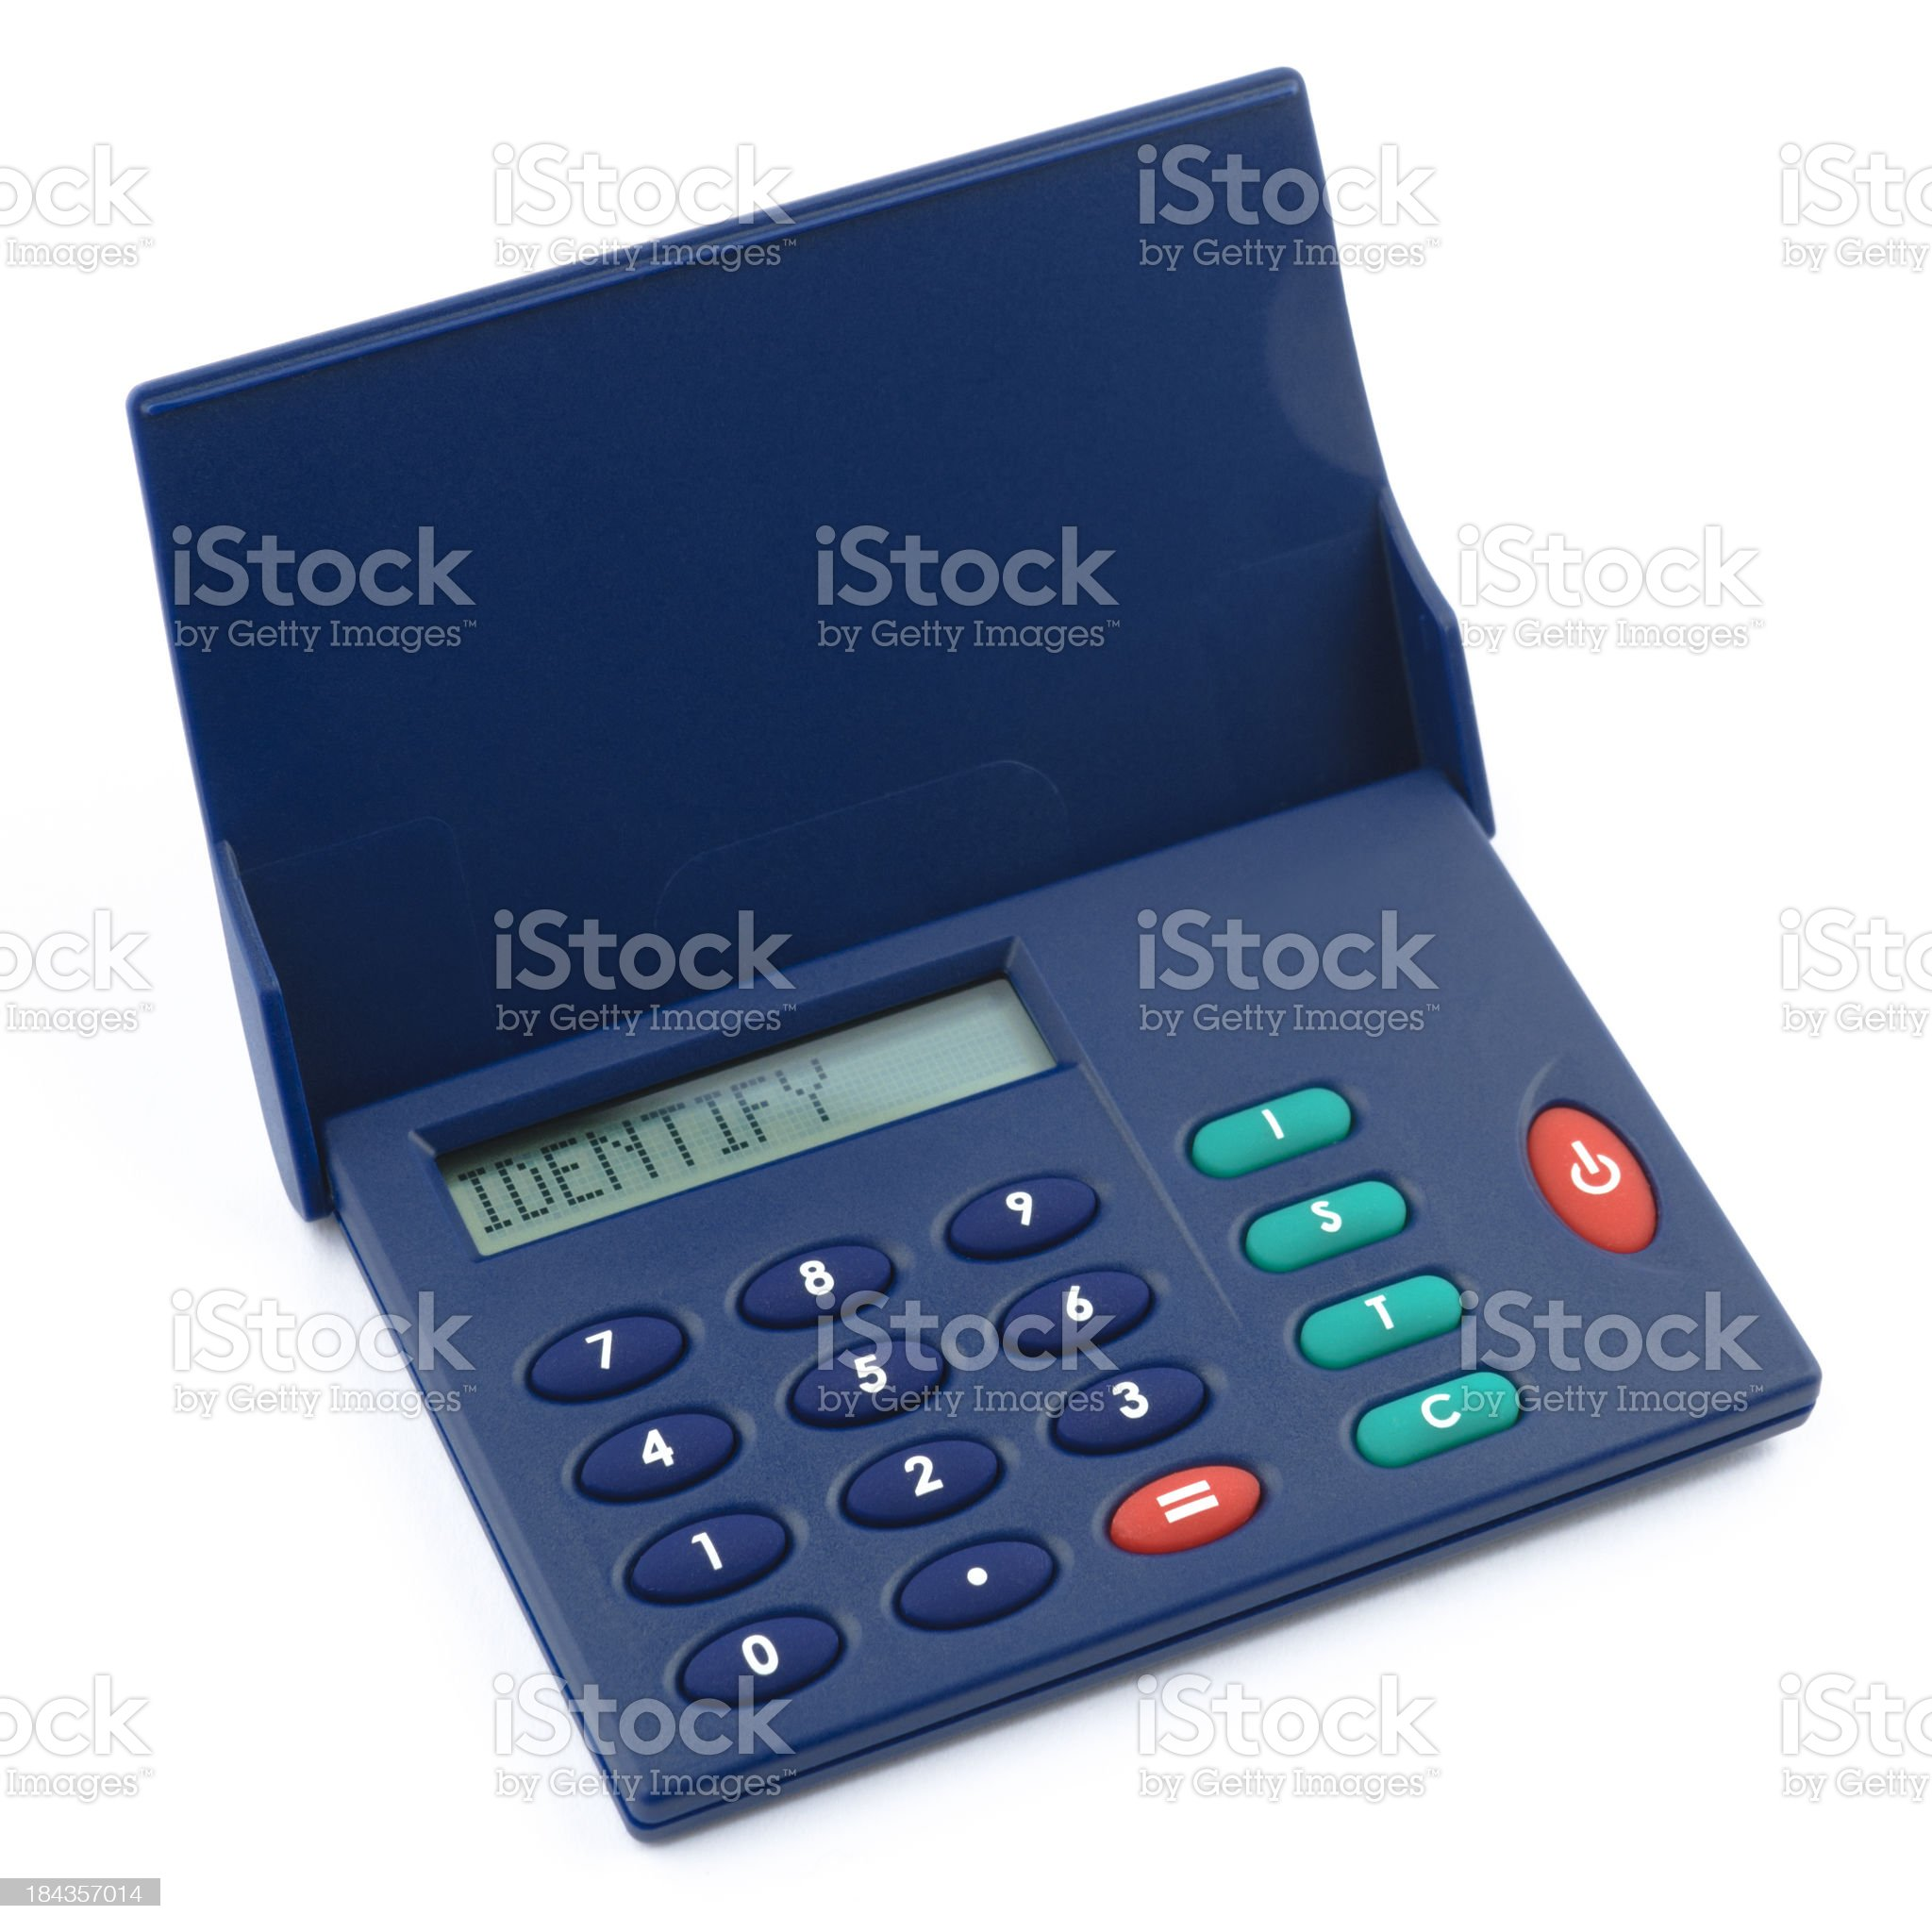 identifier | internet banking security device with clippingpath royalty-free stock photo